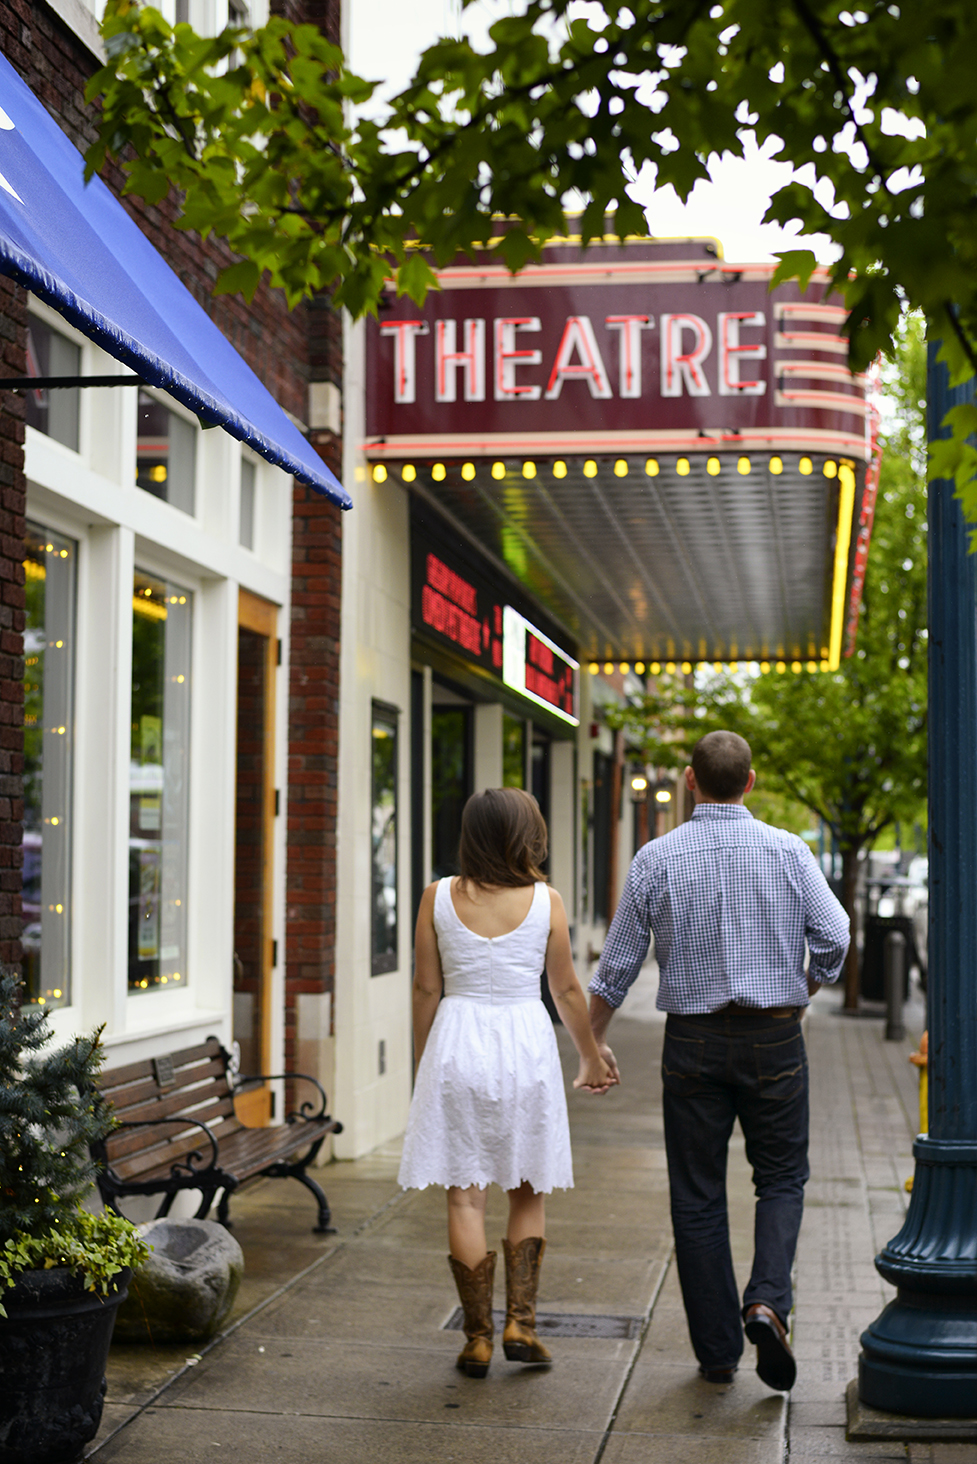 Hannah-Waylon-Downtown-Franklin-Theatre-Cinema